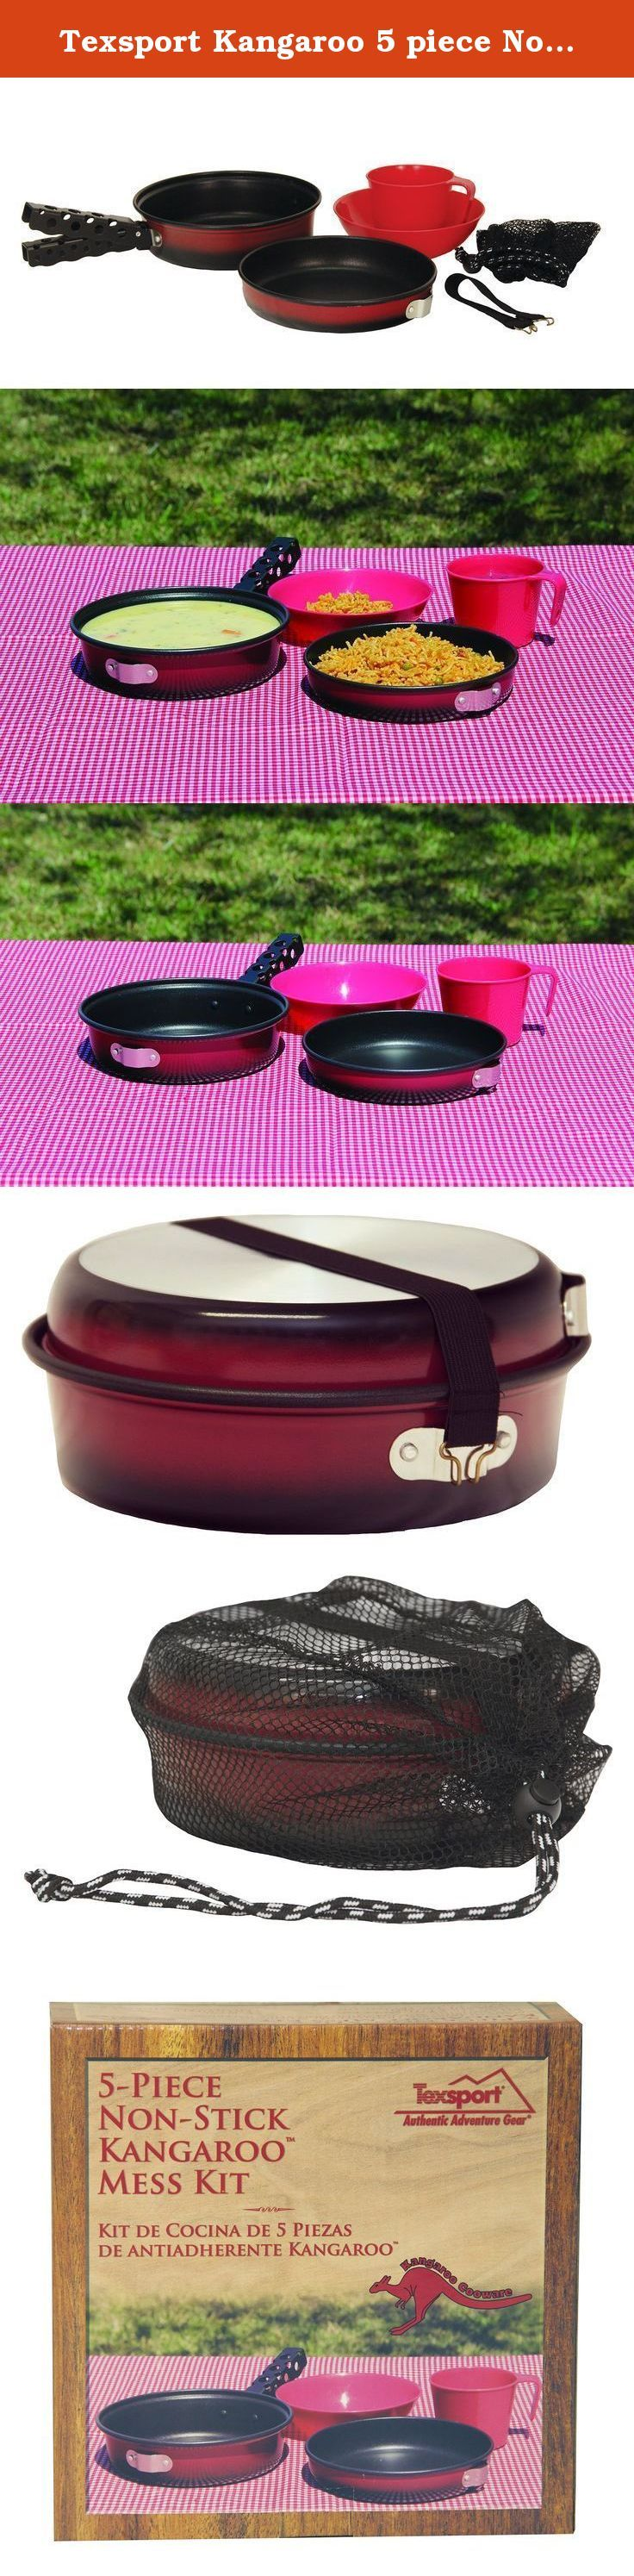 Texsport Kangaroo 5 piece Non-Stick Mess Kit Outdoor Camping Cookware Cook Set with Bowl, Cup and Storage Bag. It's easy to clean, thanks to non-stick interior coating.